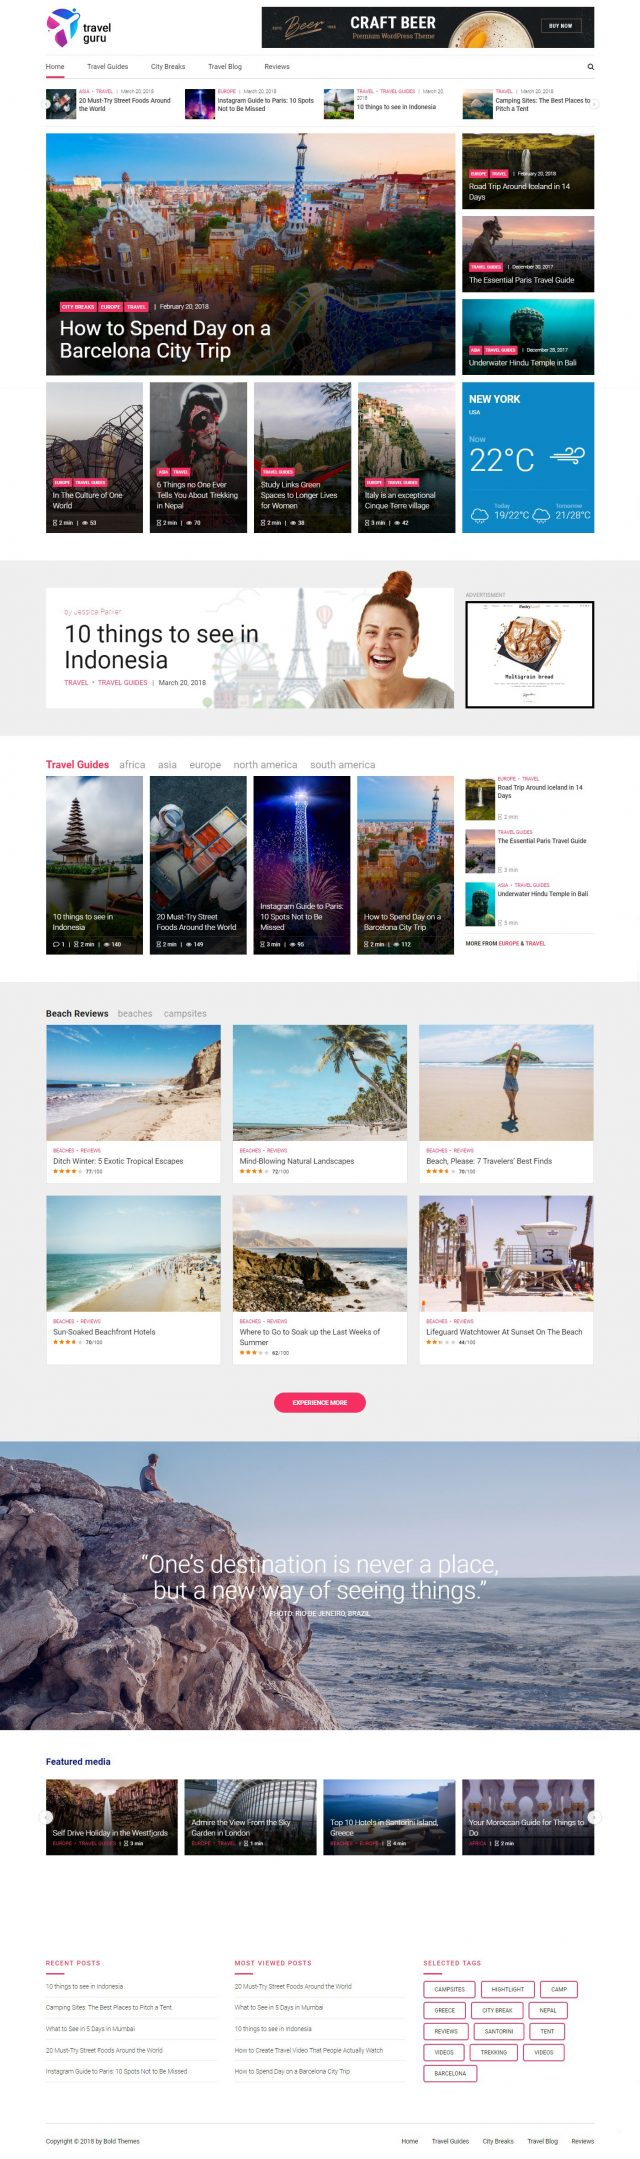 newstar wordpress theme travel magazine homepage layout